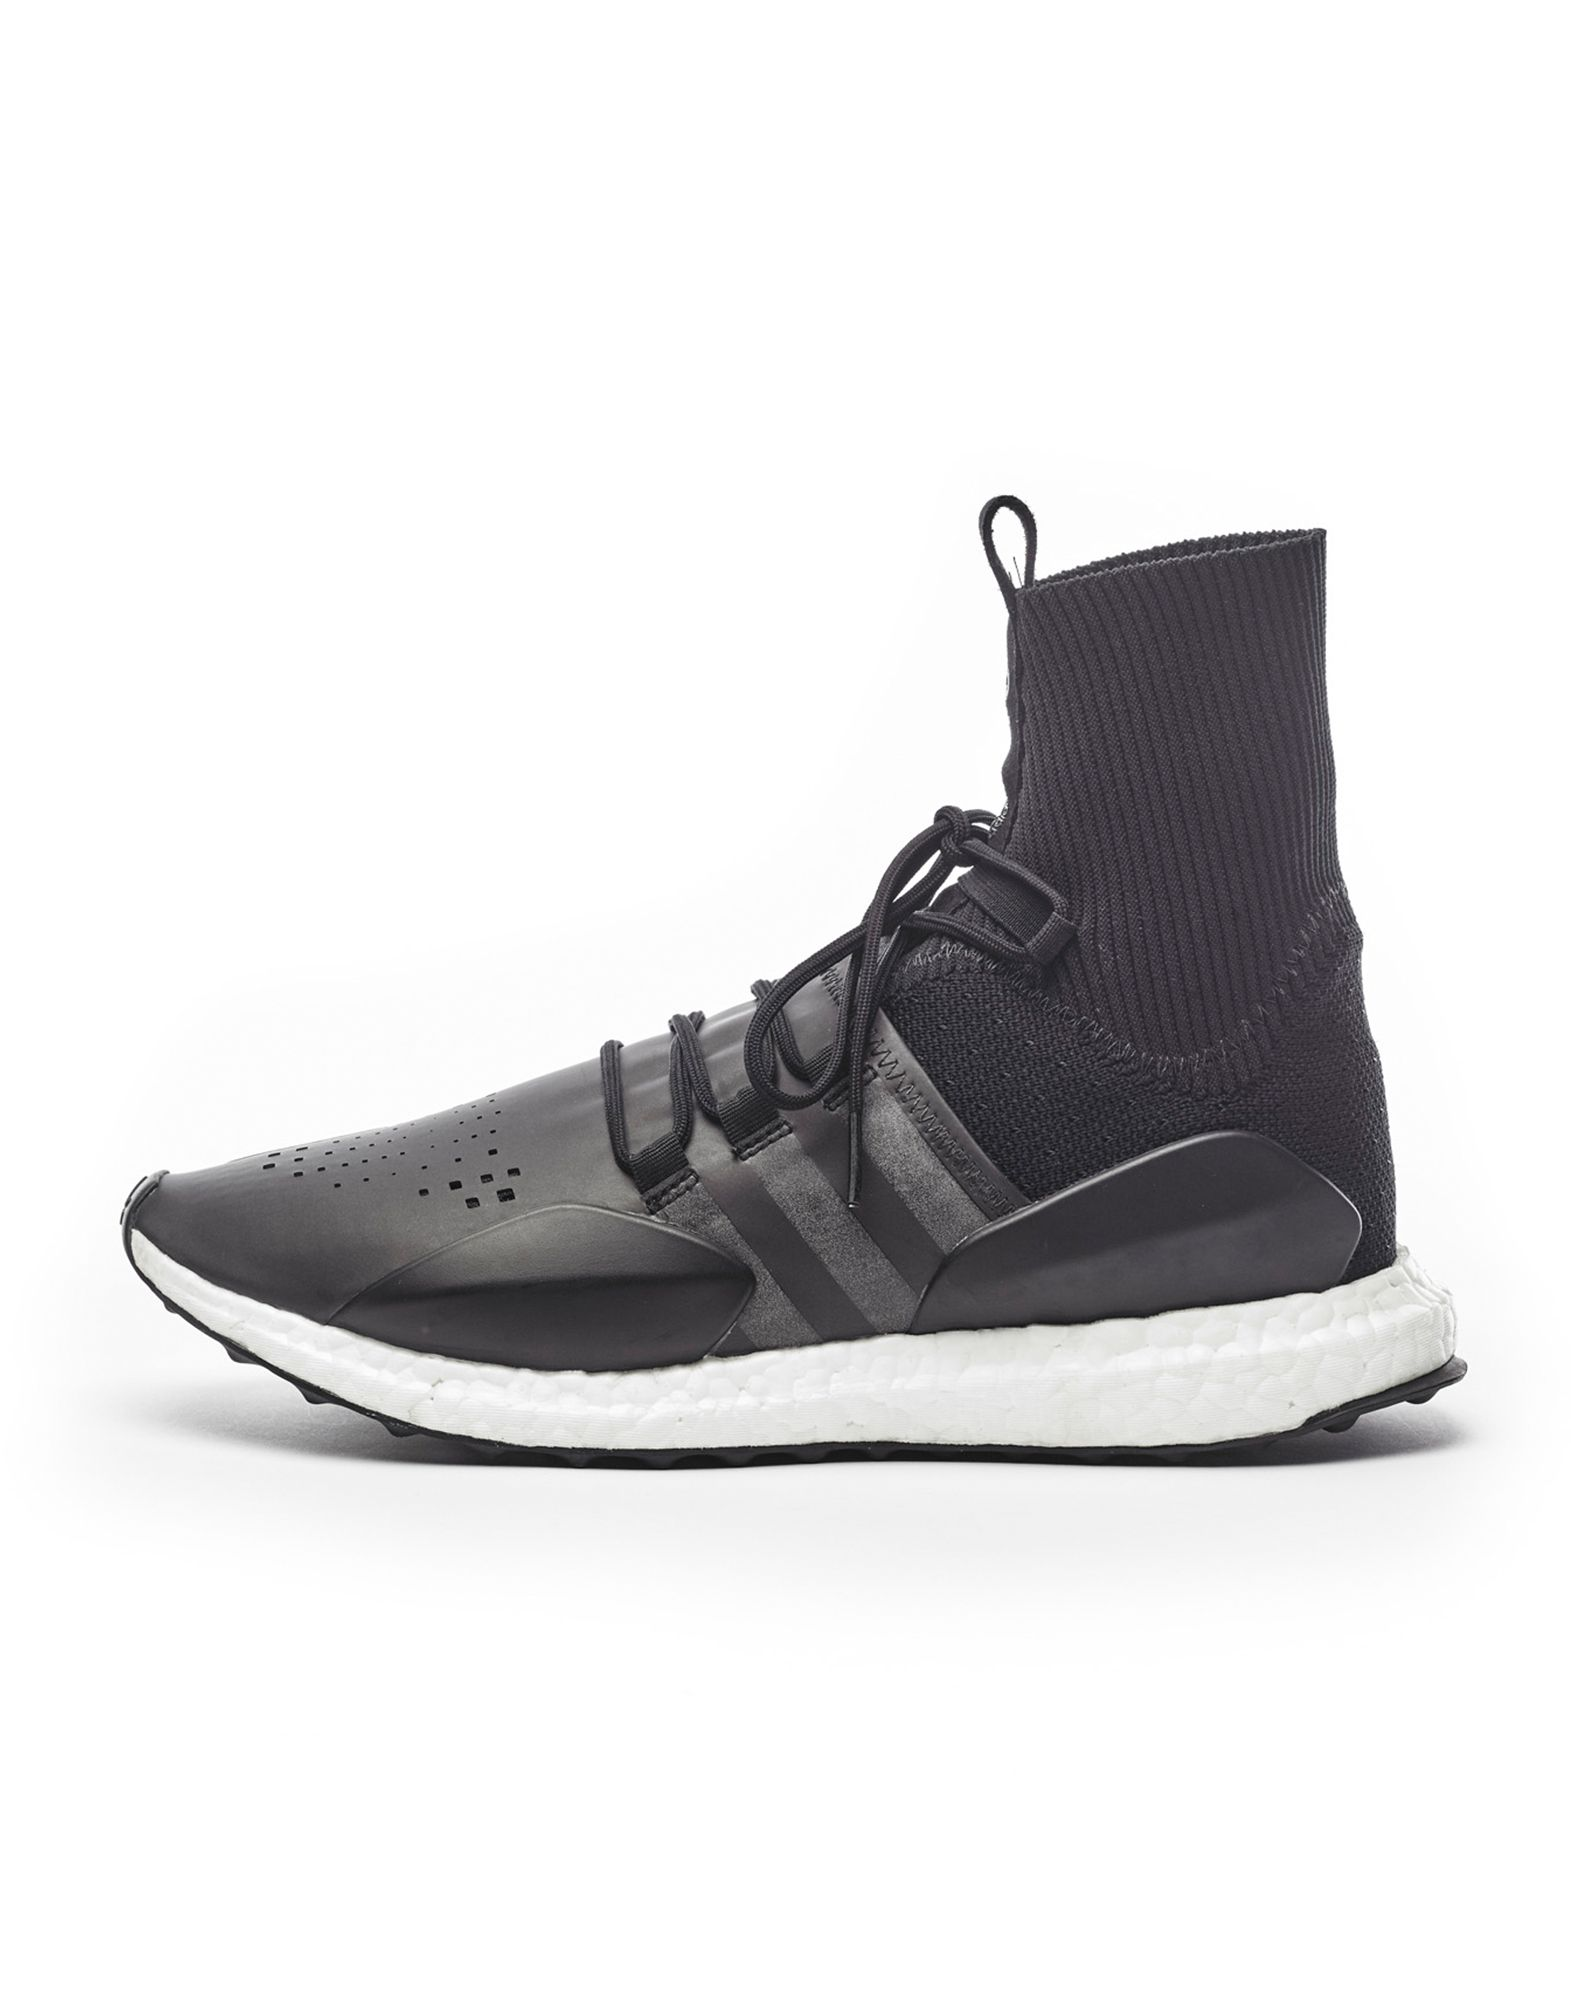 Y 3 SPORT APPROACH SHOES man Y 3 adidas